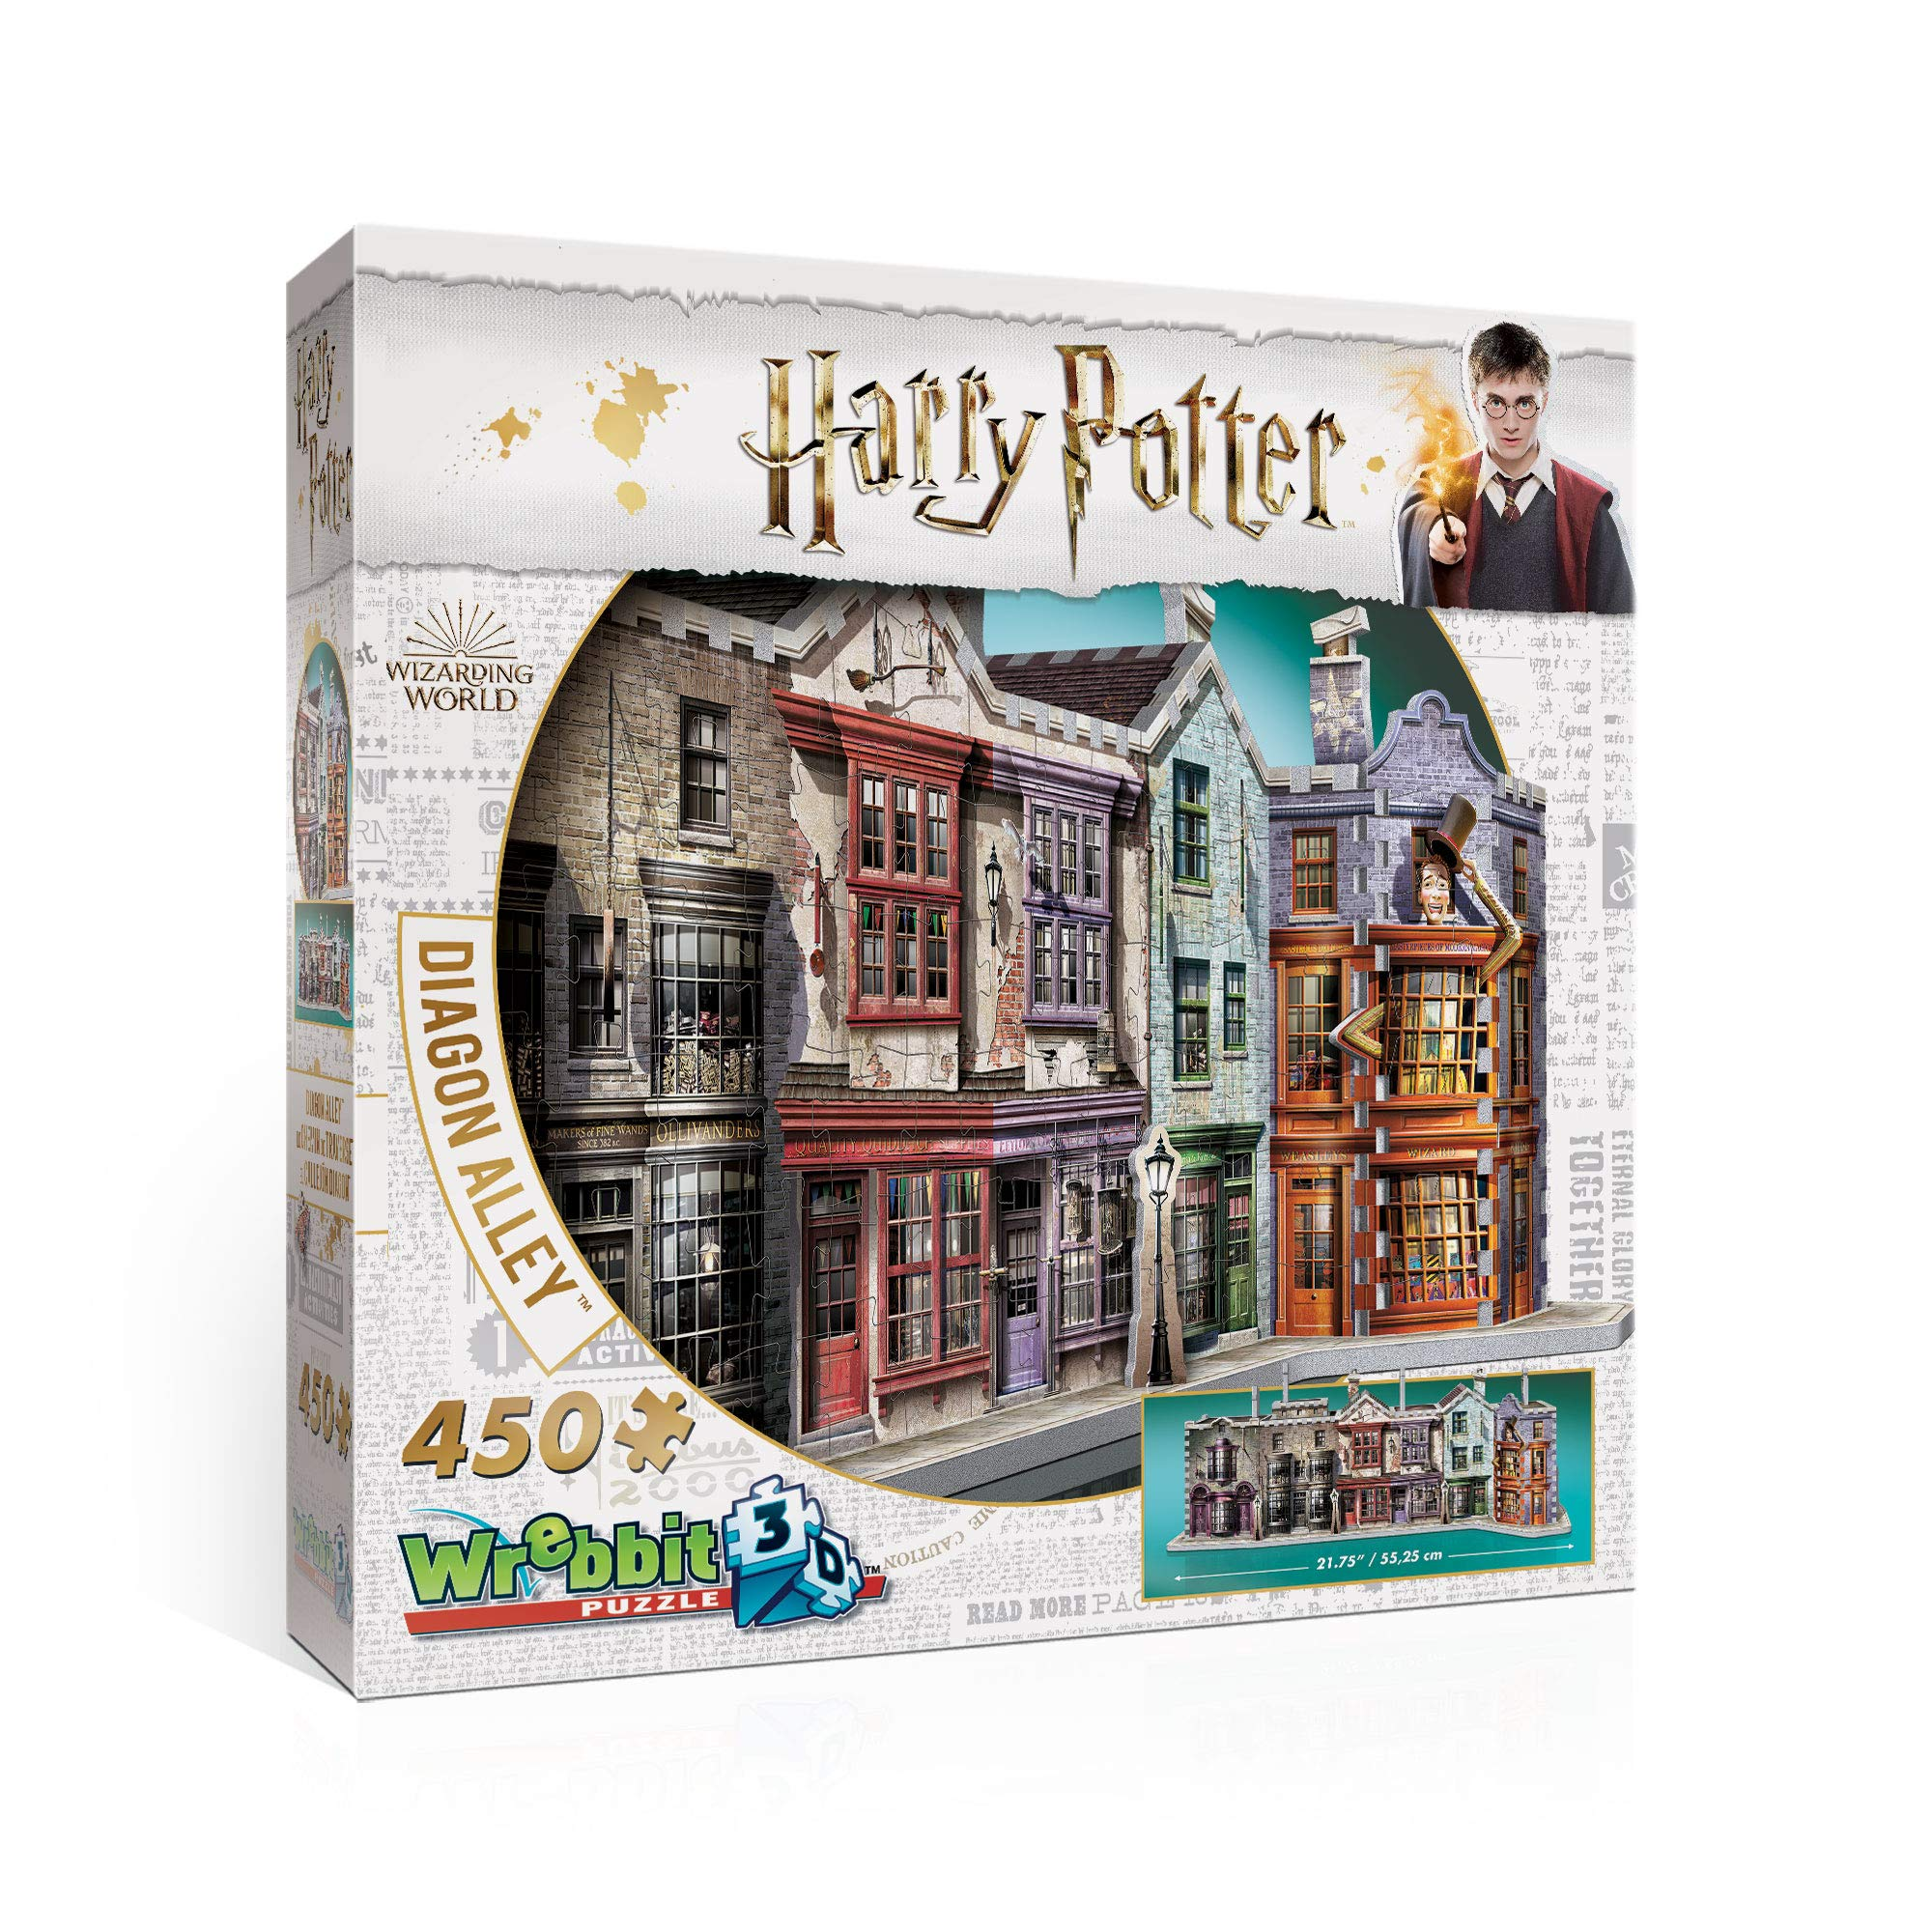 Winkelgasse/Diagon Alley - Harry Potter/ 3D-Puzzle 450 Teile product image